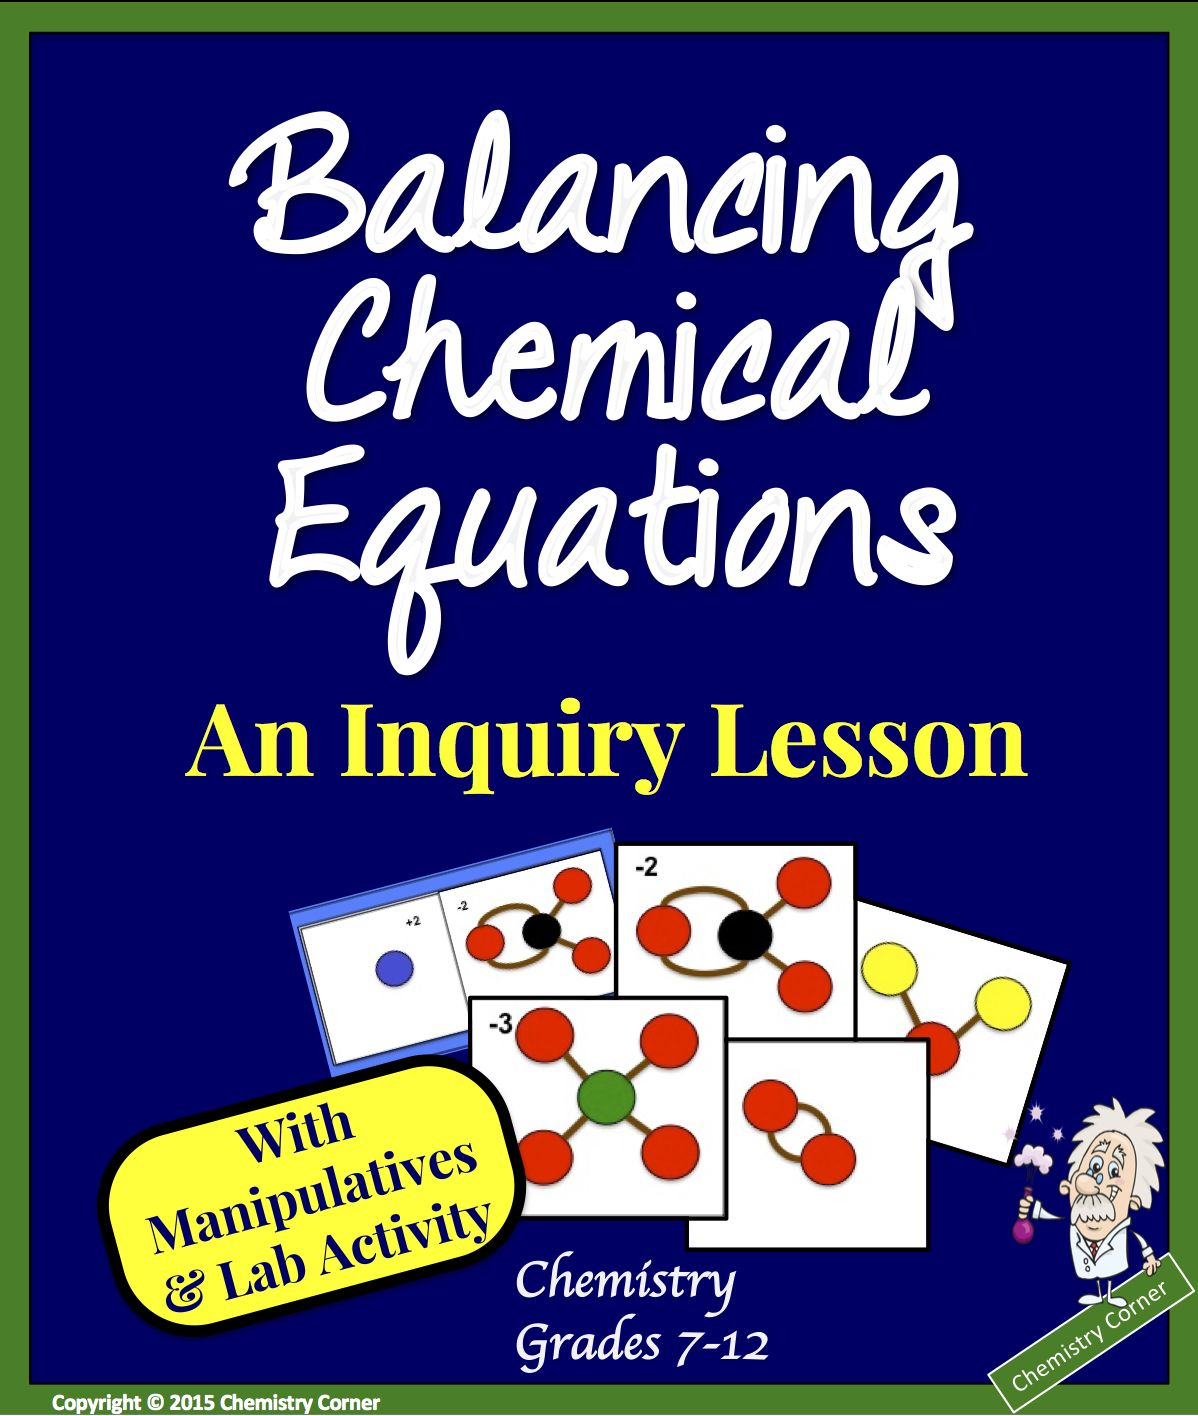 Balancing Chemical Equations An Inquiry Lesson